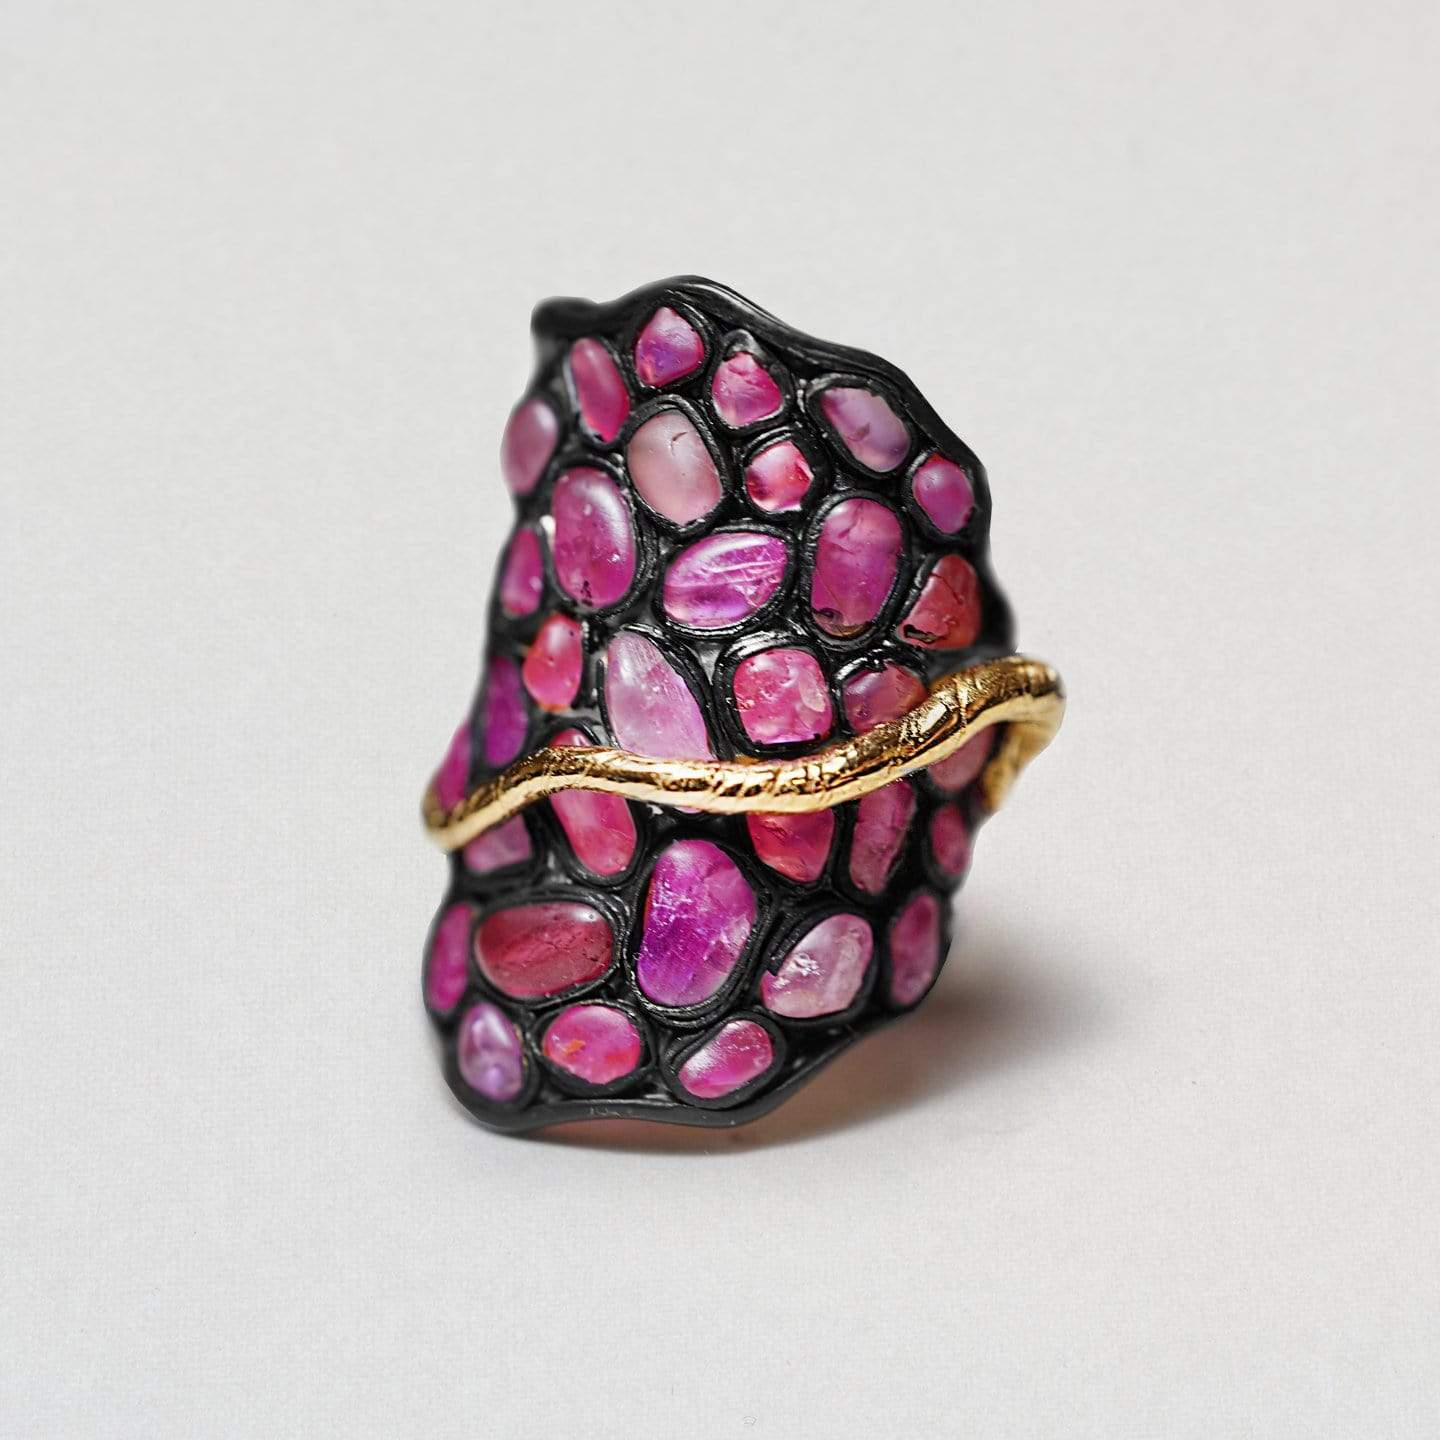 Salome Ring, Anthracite, black, Exclusive, Gold, Ruby, spo-disabled, StoneColor:PinkRuby, Style:Statement, Type:StainedGlass Ring